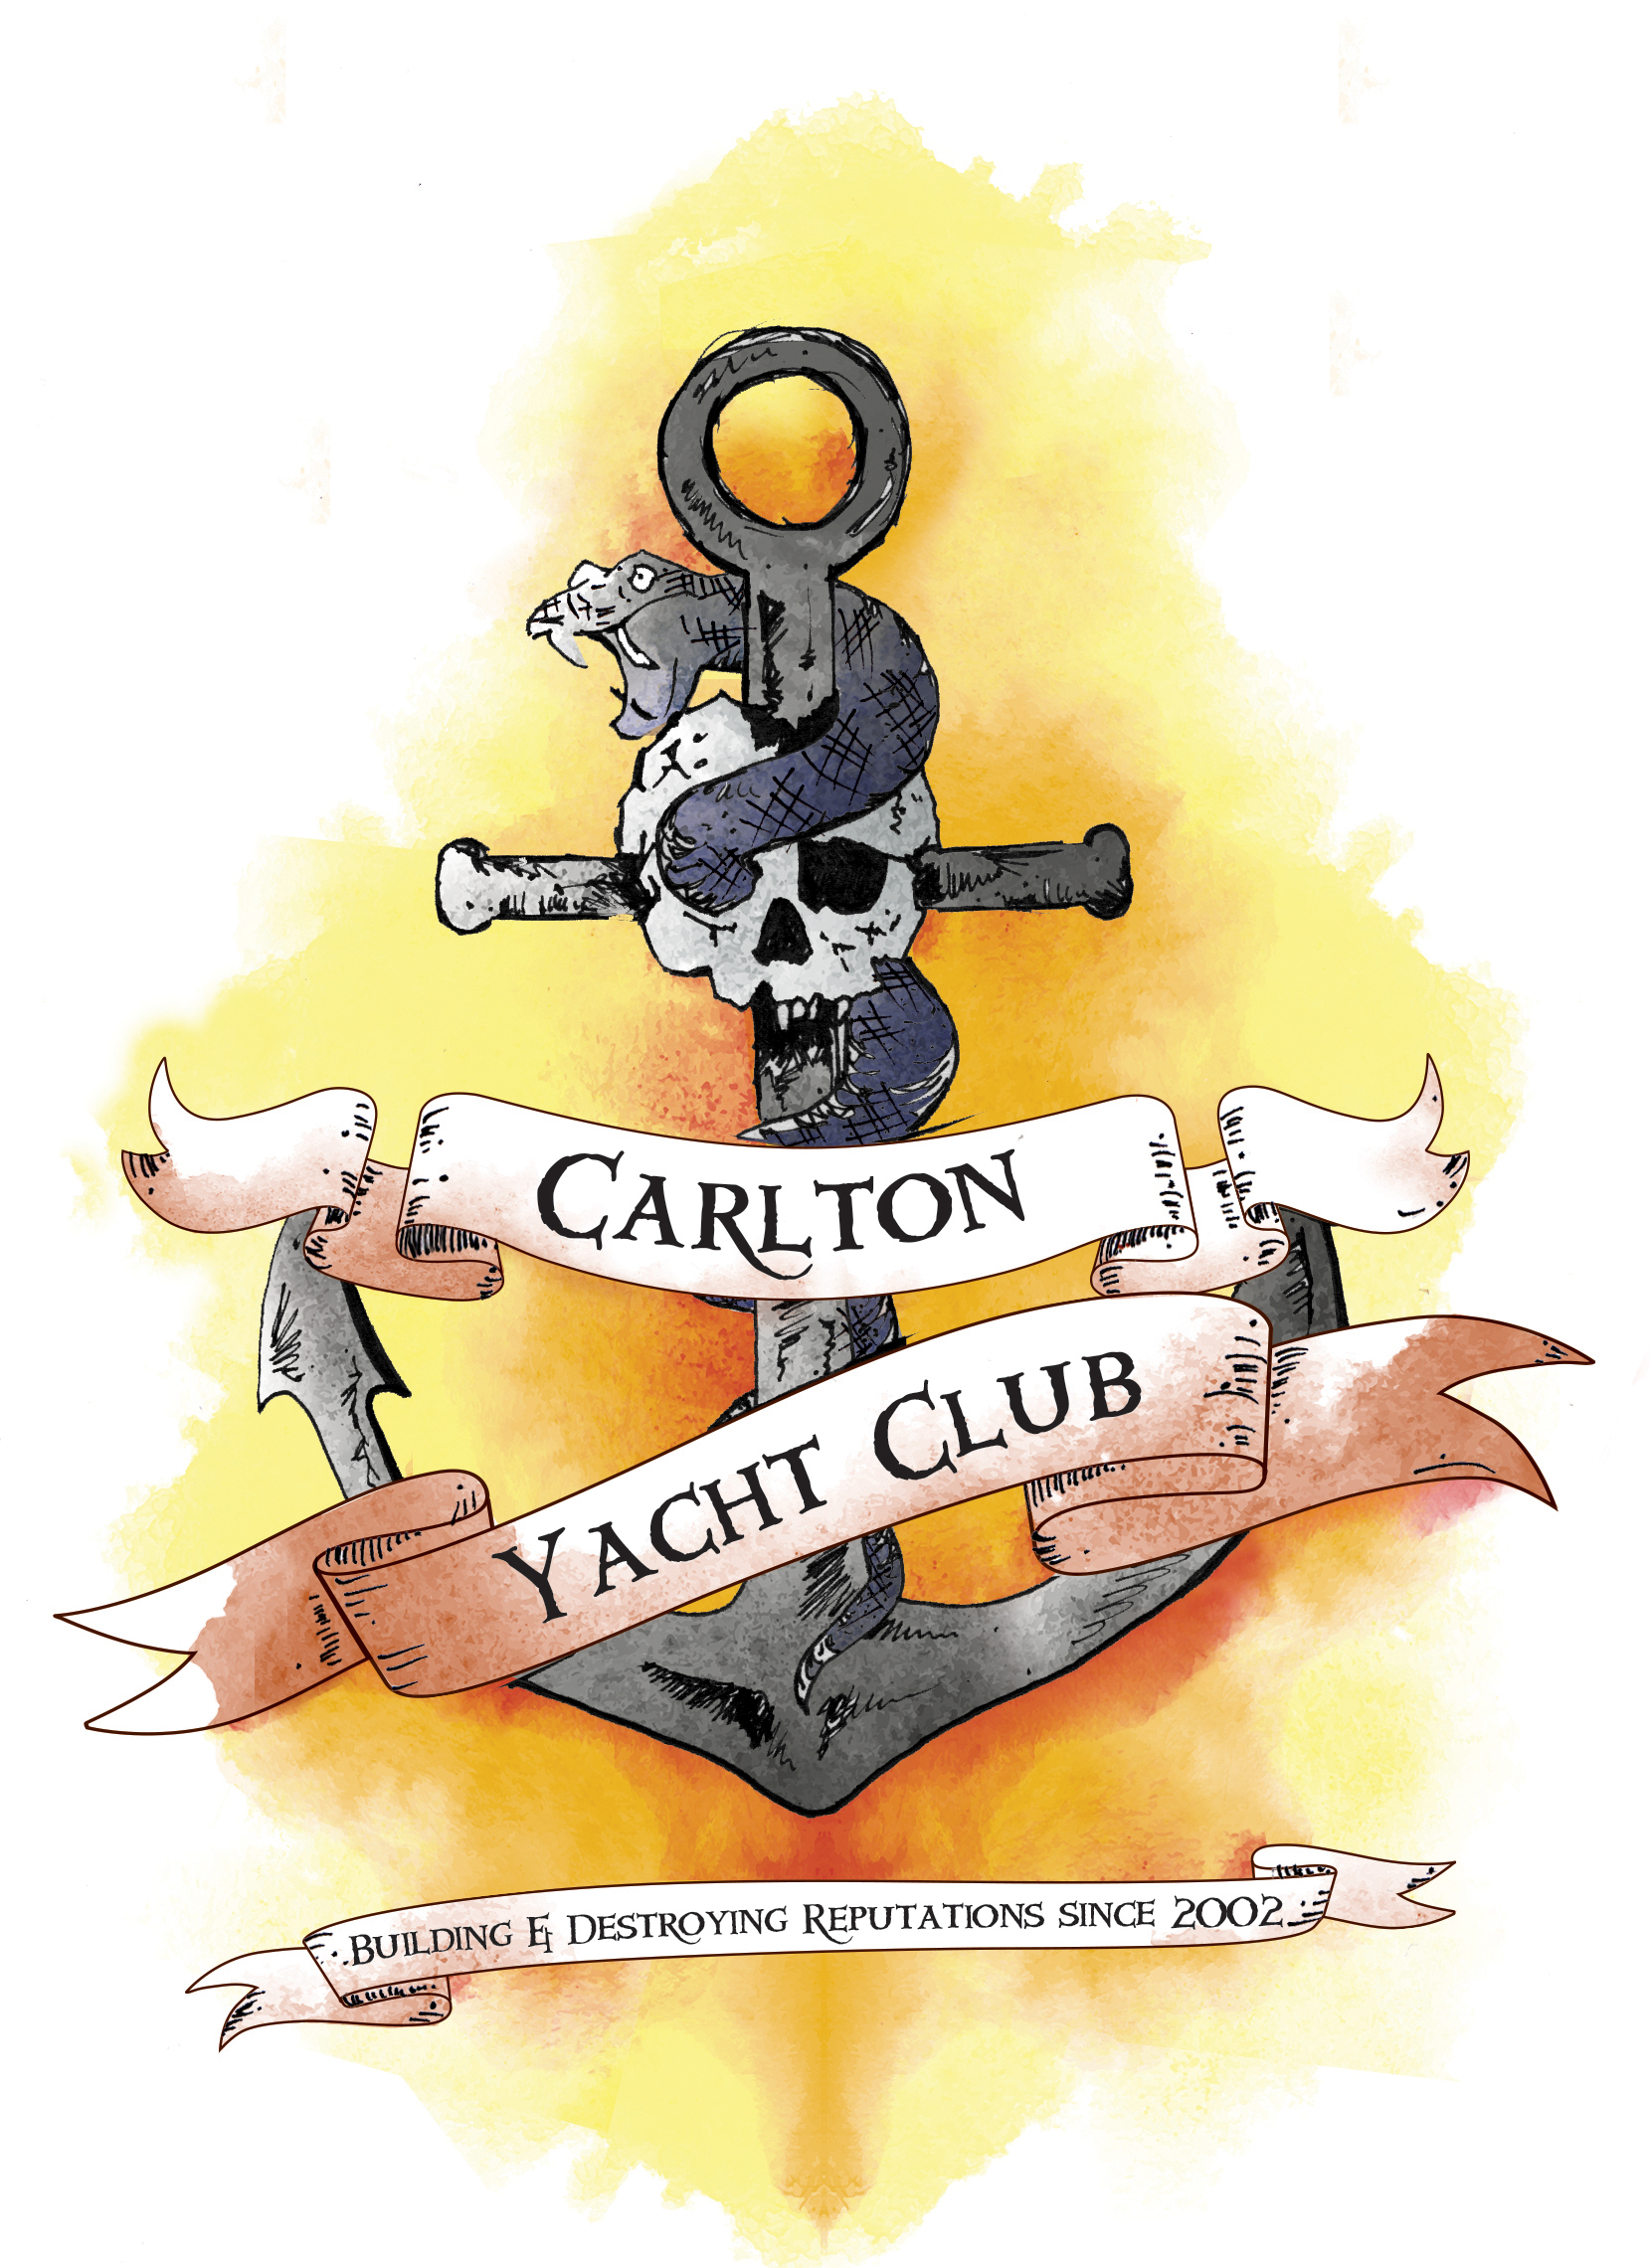 Carlton Yacht Club